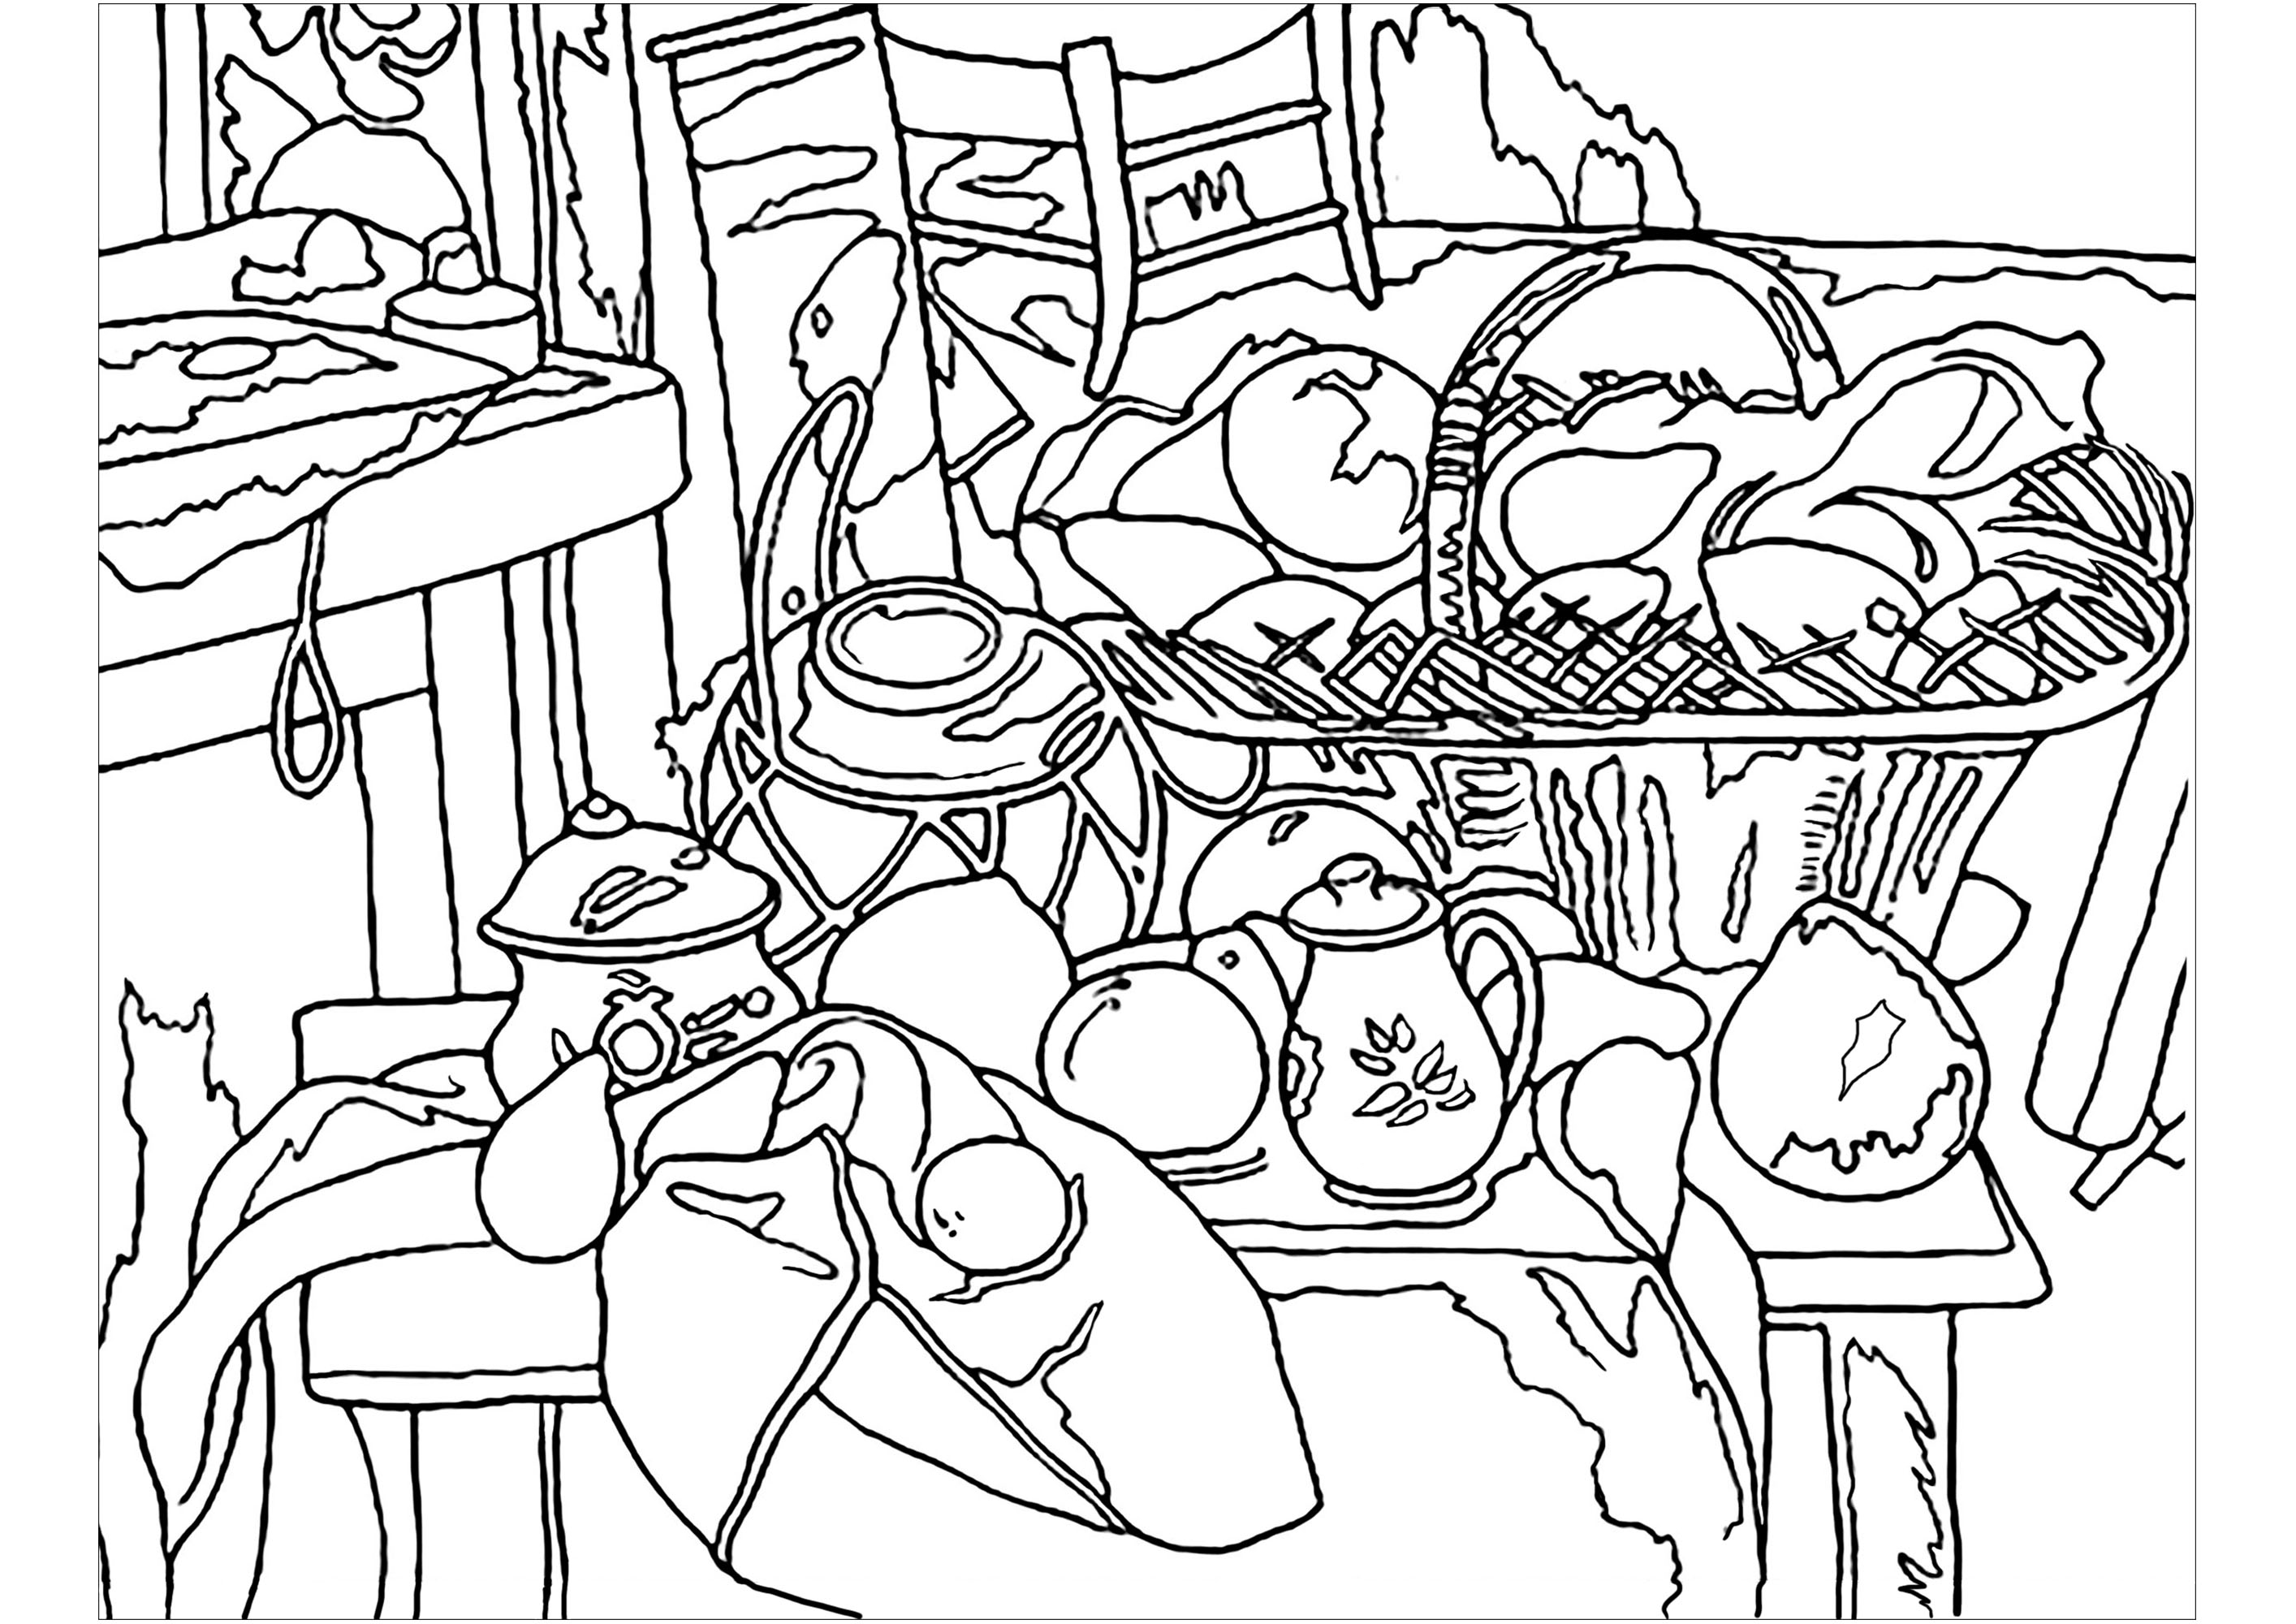 Paul Coloring Pages Paul Czanne Kitchen Table Still Life Masterpieces Adult